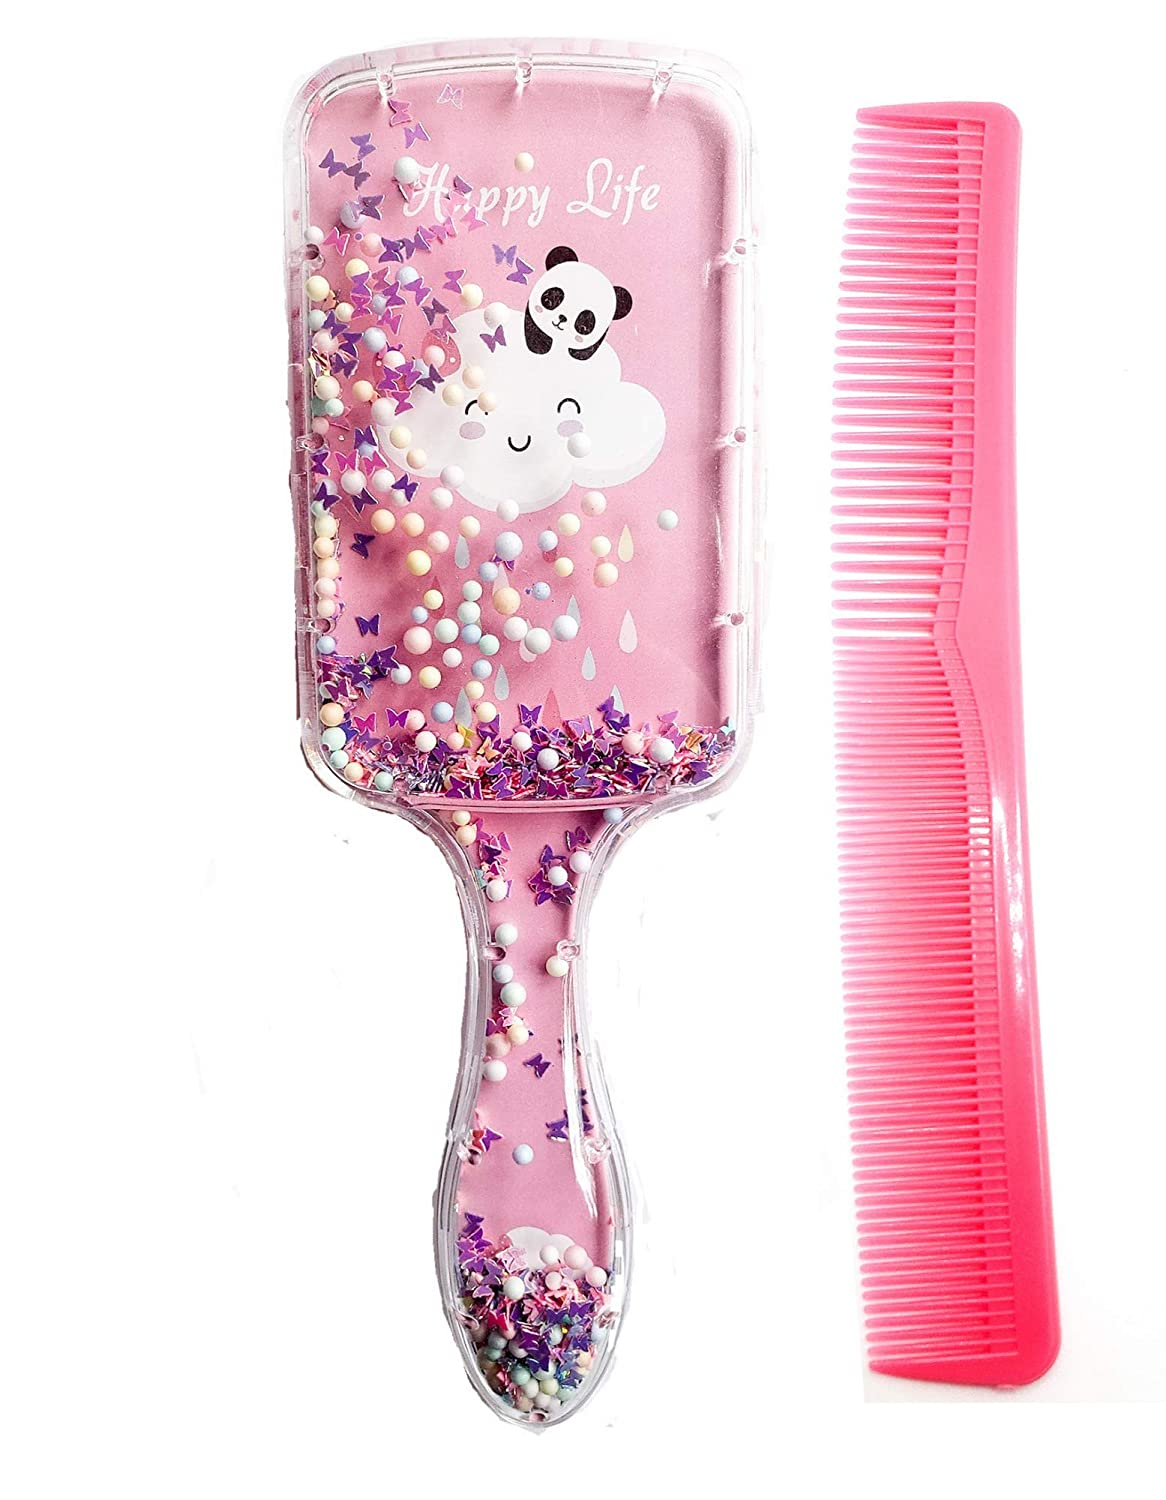 Weekly update RayBella Glitter Hair Brush and Today's only Detangling Bru Paddle Comb